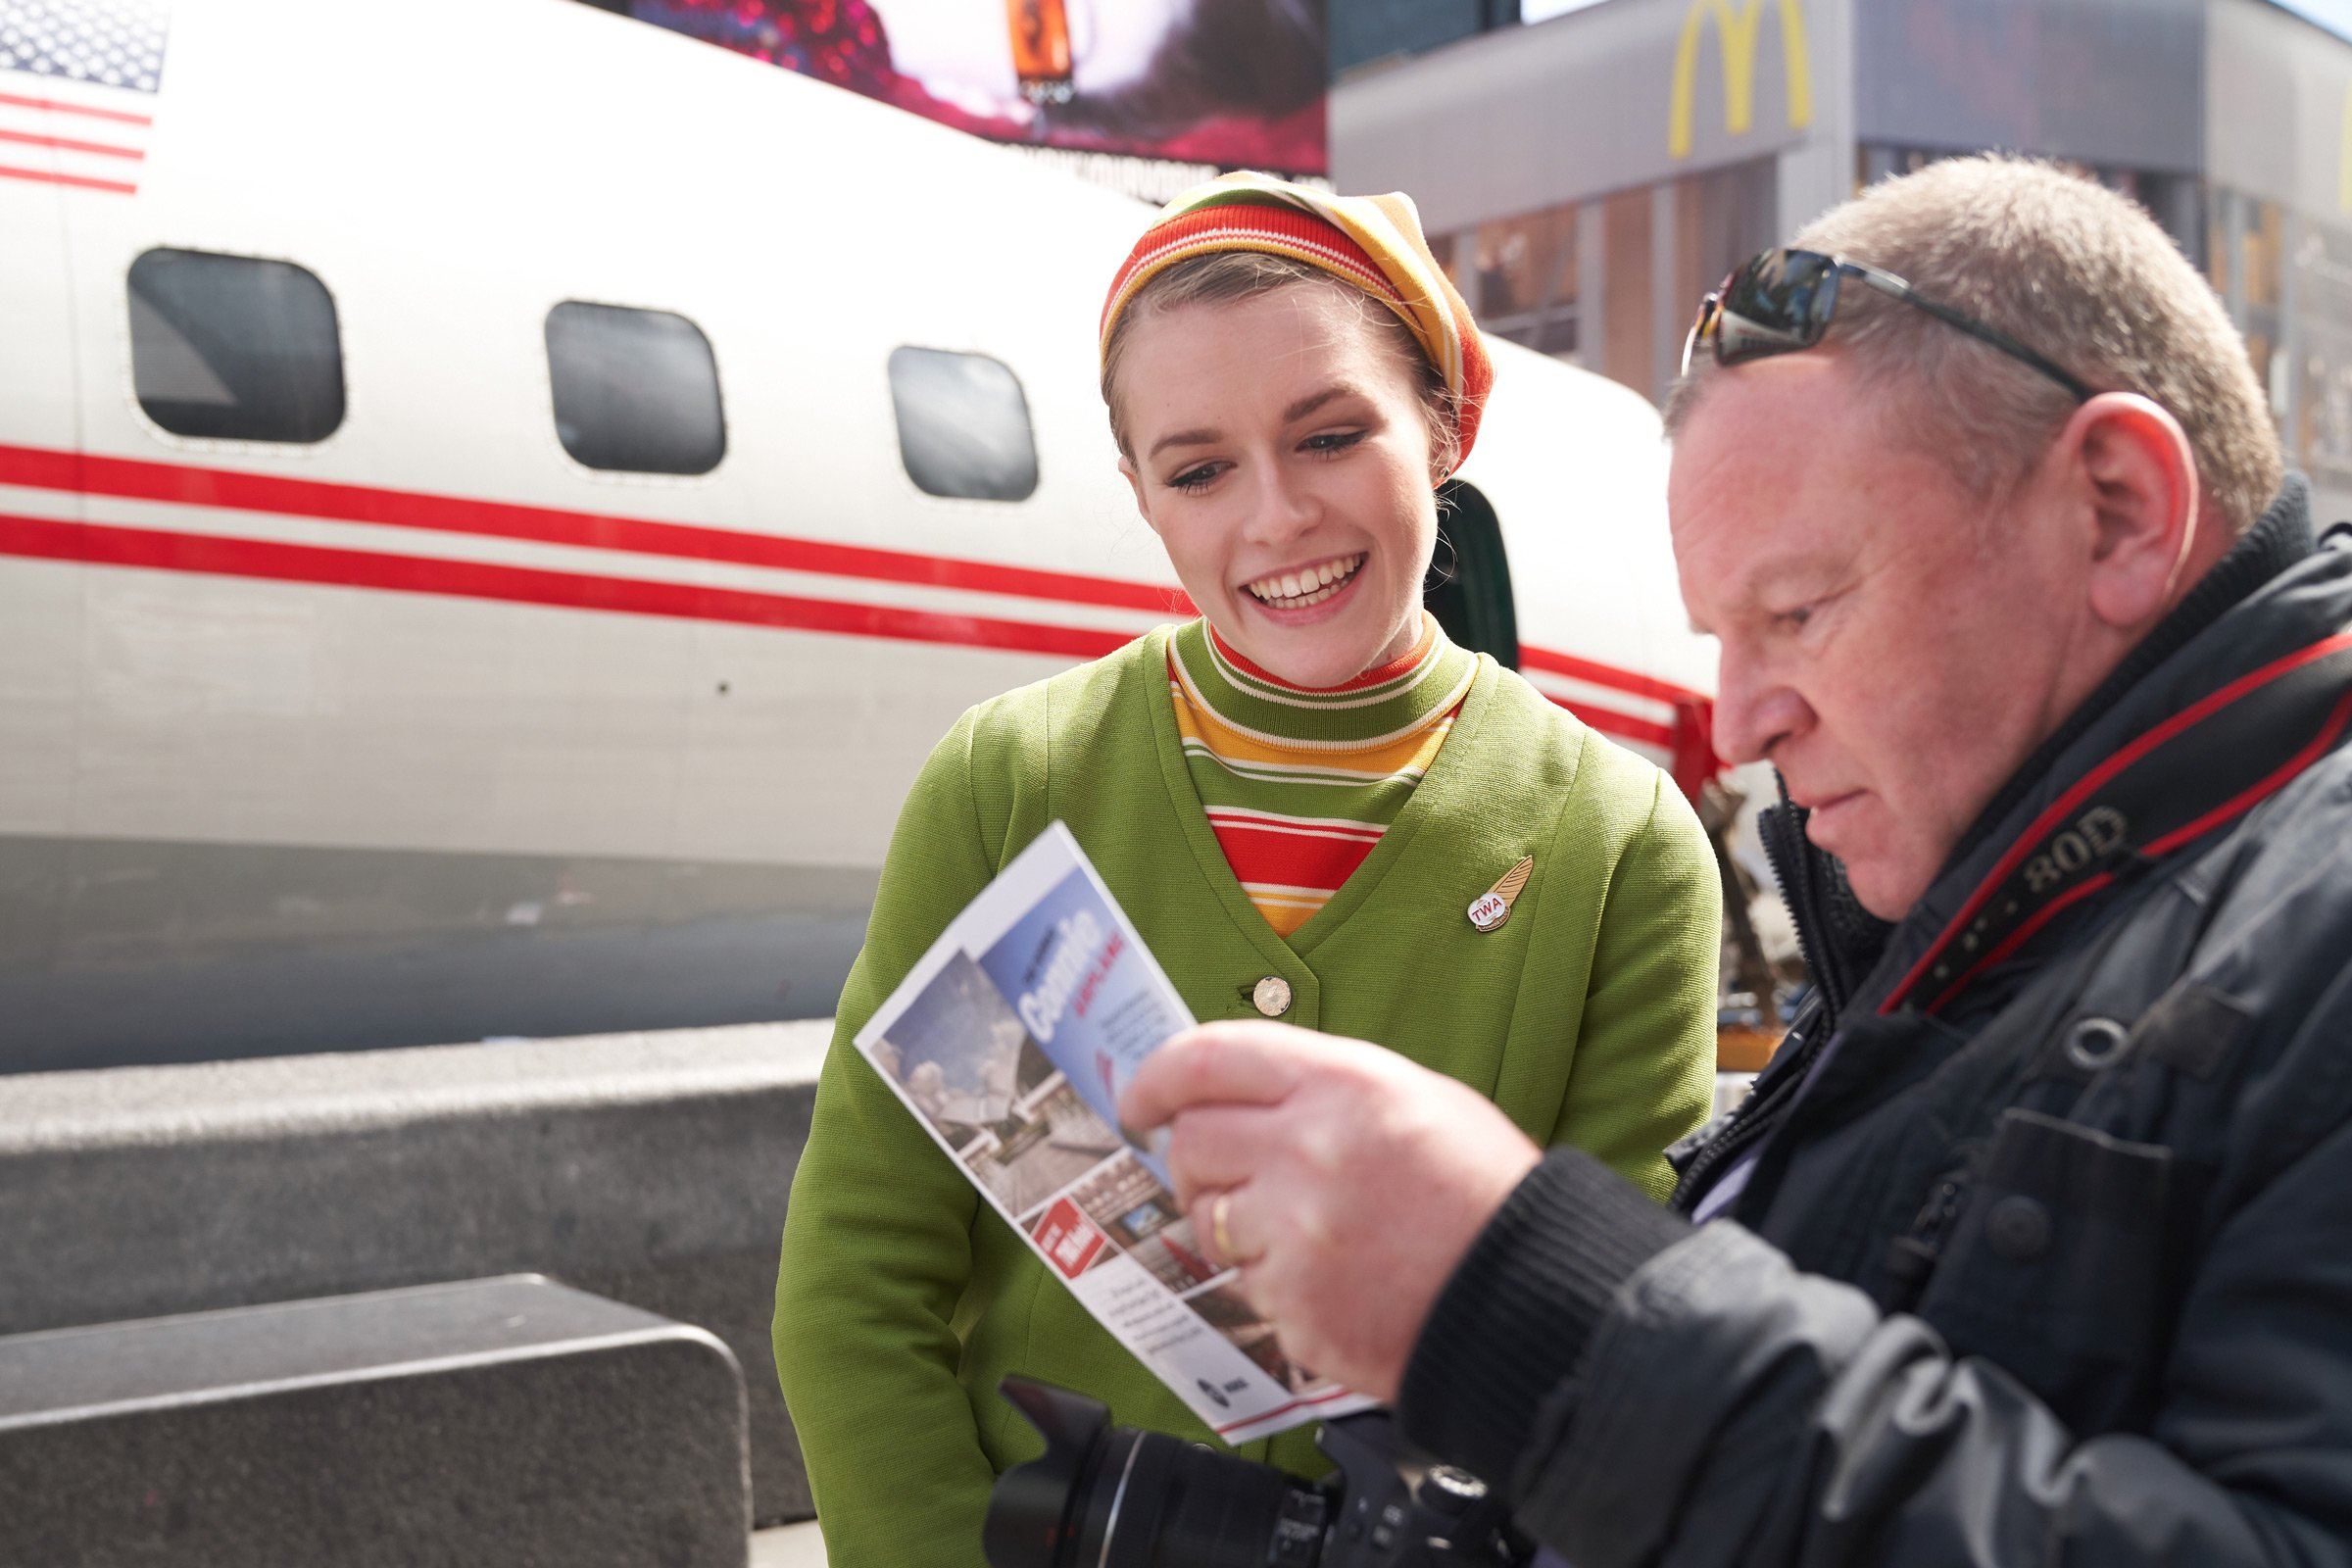 An actress in a vintage TWA flight attendant uniform educates a passerby about Connie's storied history on March 24, 2019.